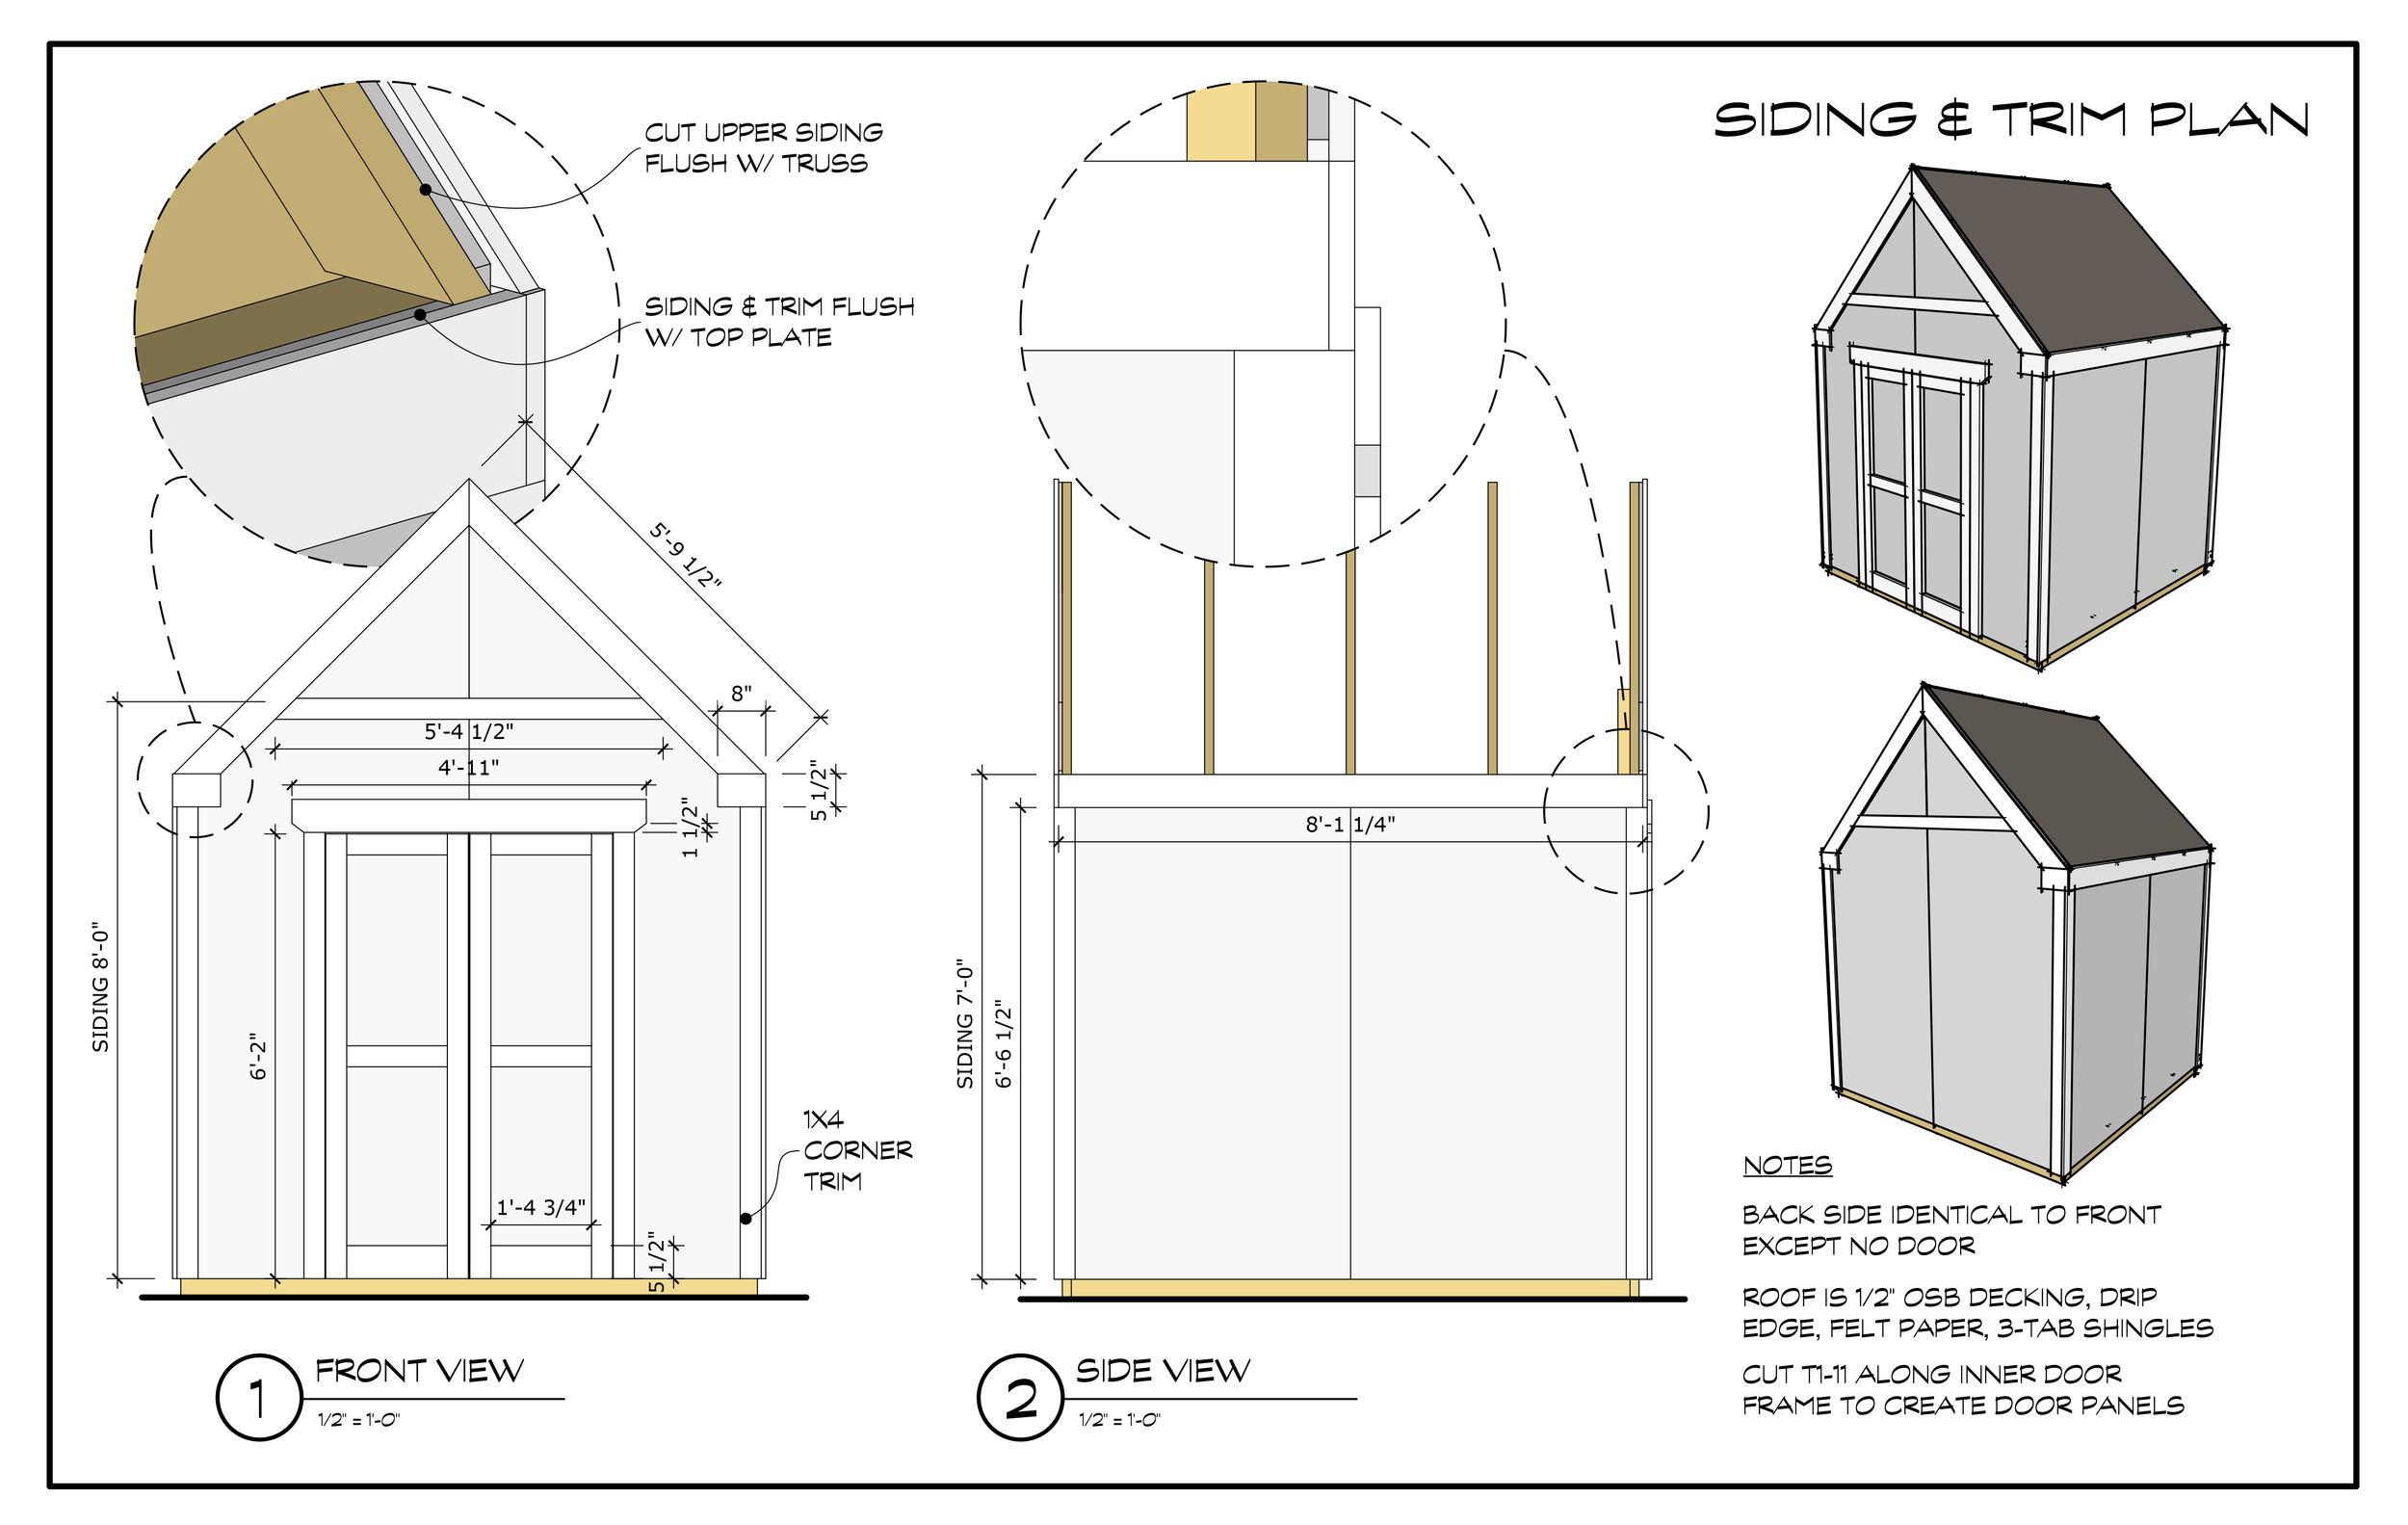 Shed Layout_2.jpg